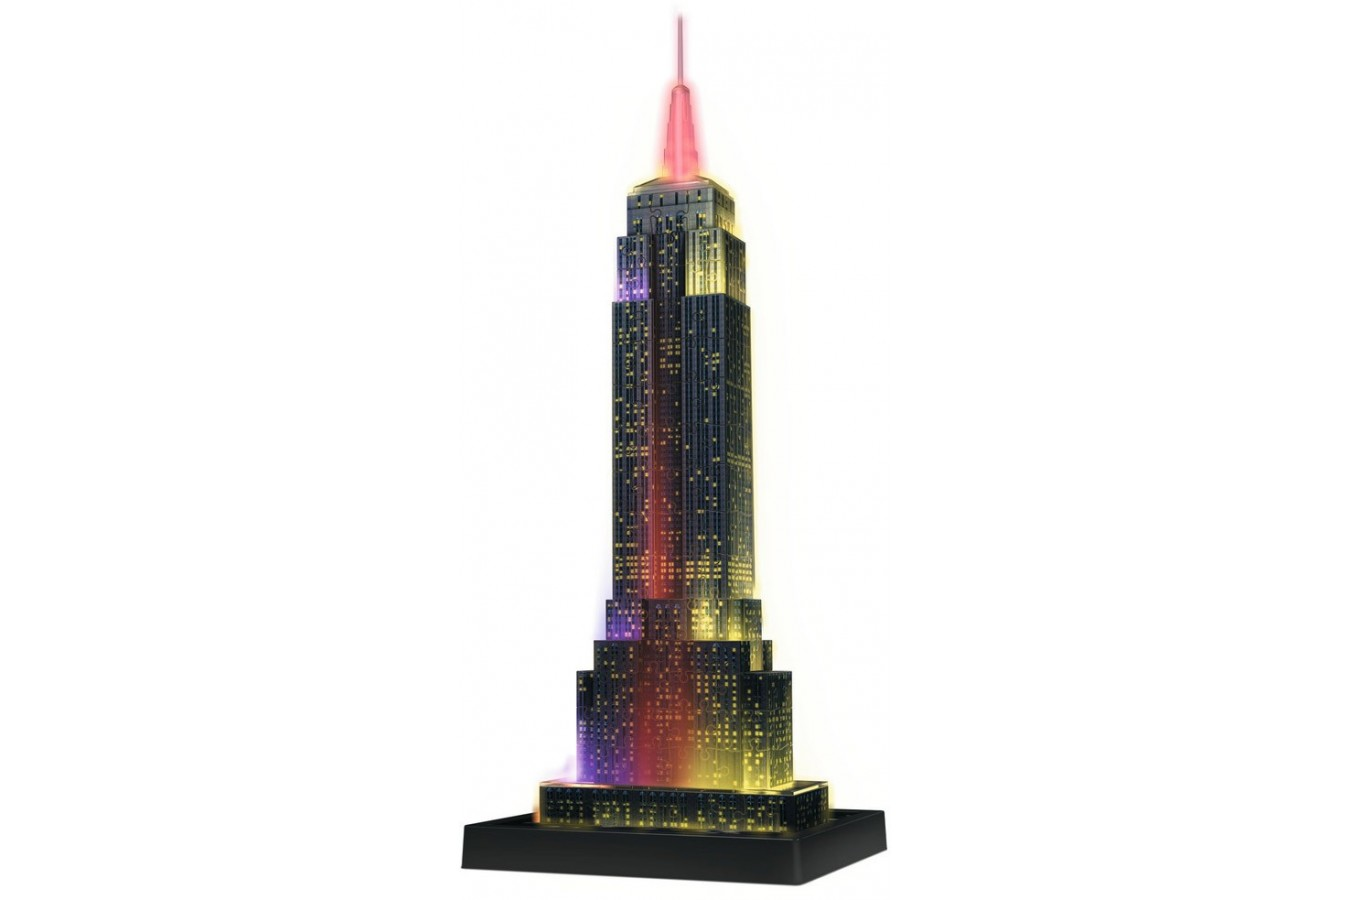 Puzzle 3D Ravensburger - Empire State Building - Lumineaza Noaptea, 216 piese (12566)